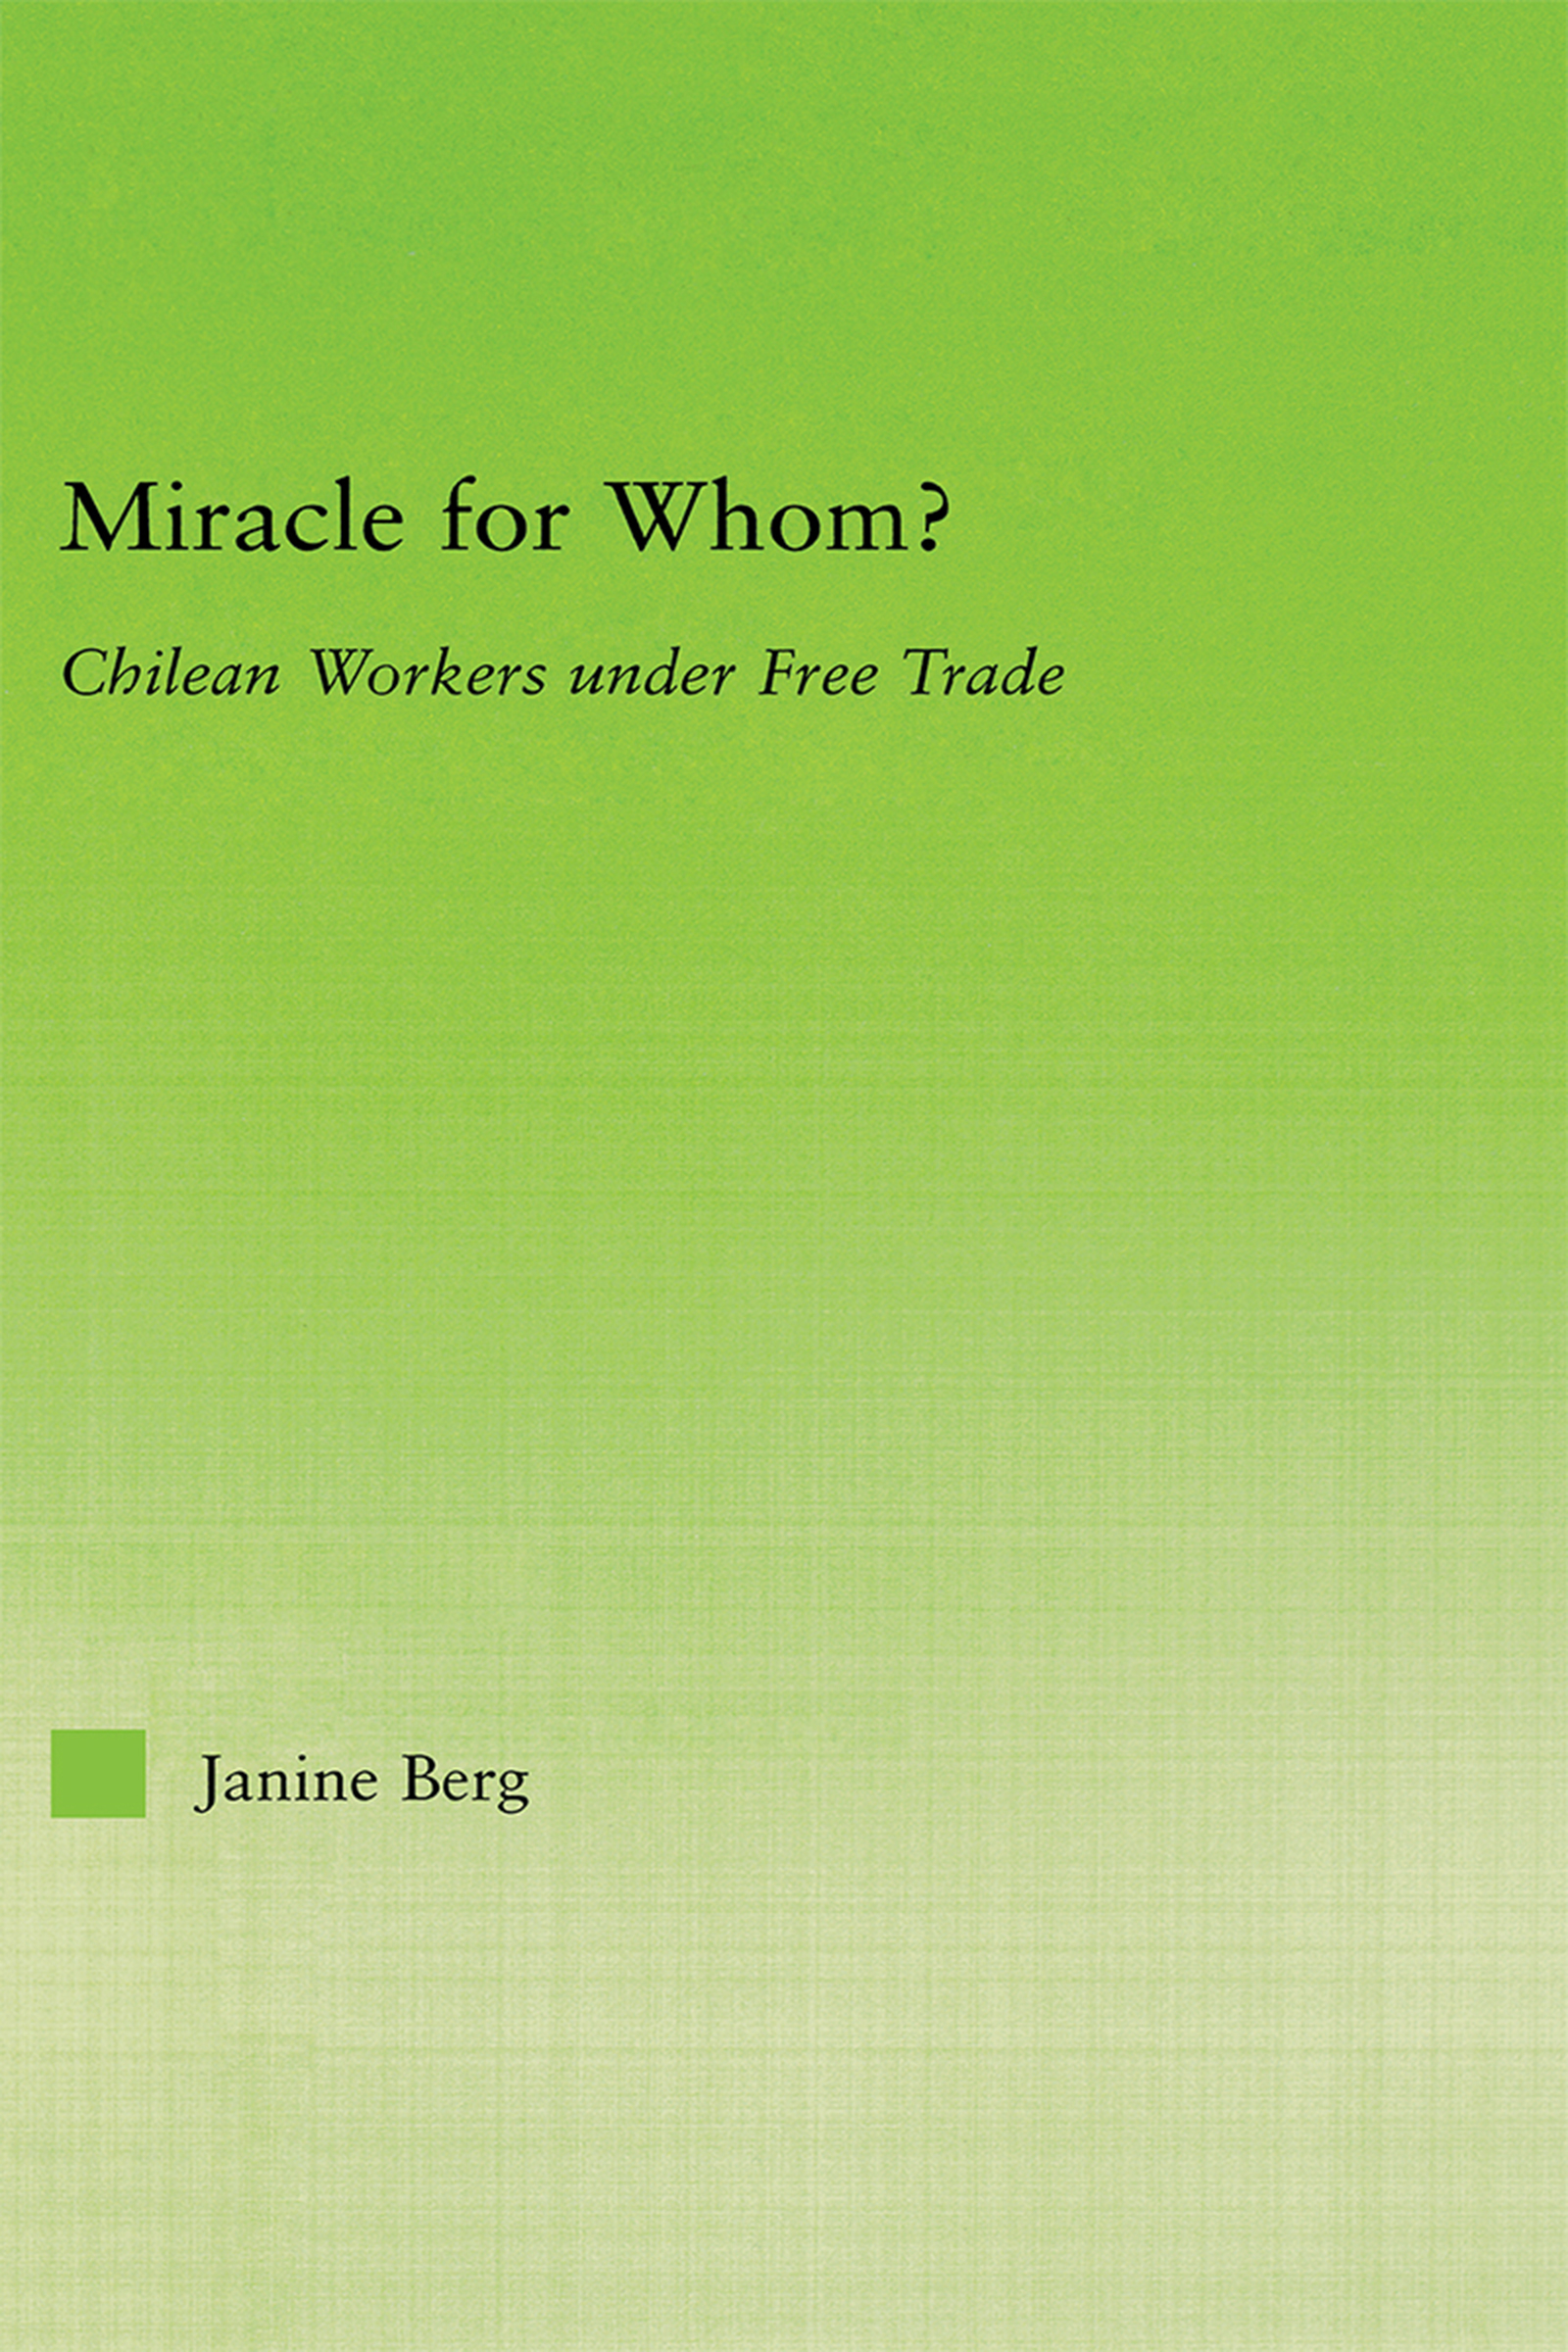 Miracle for Whom?